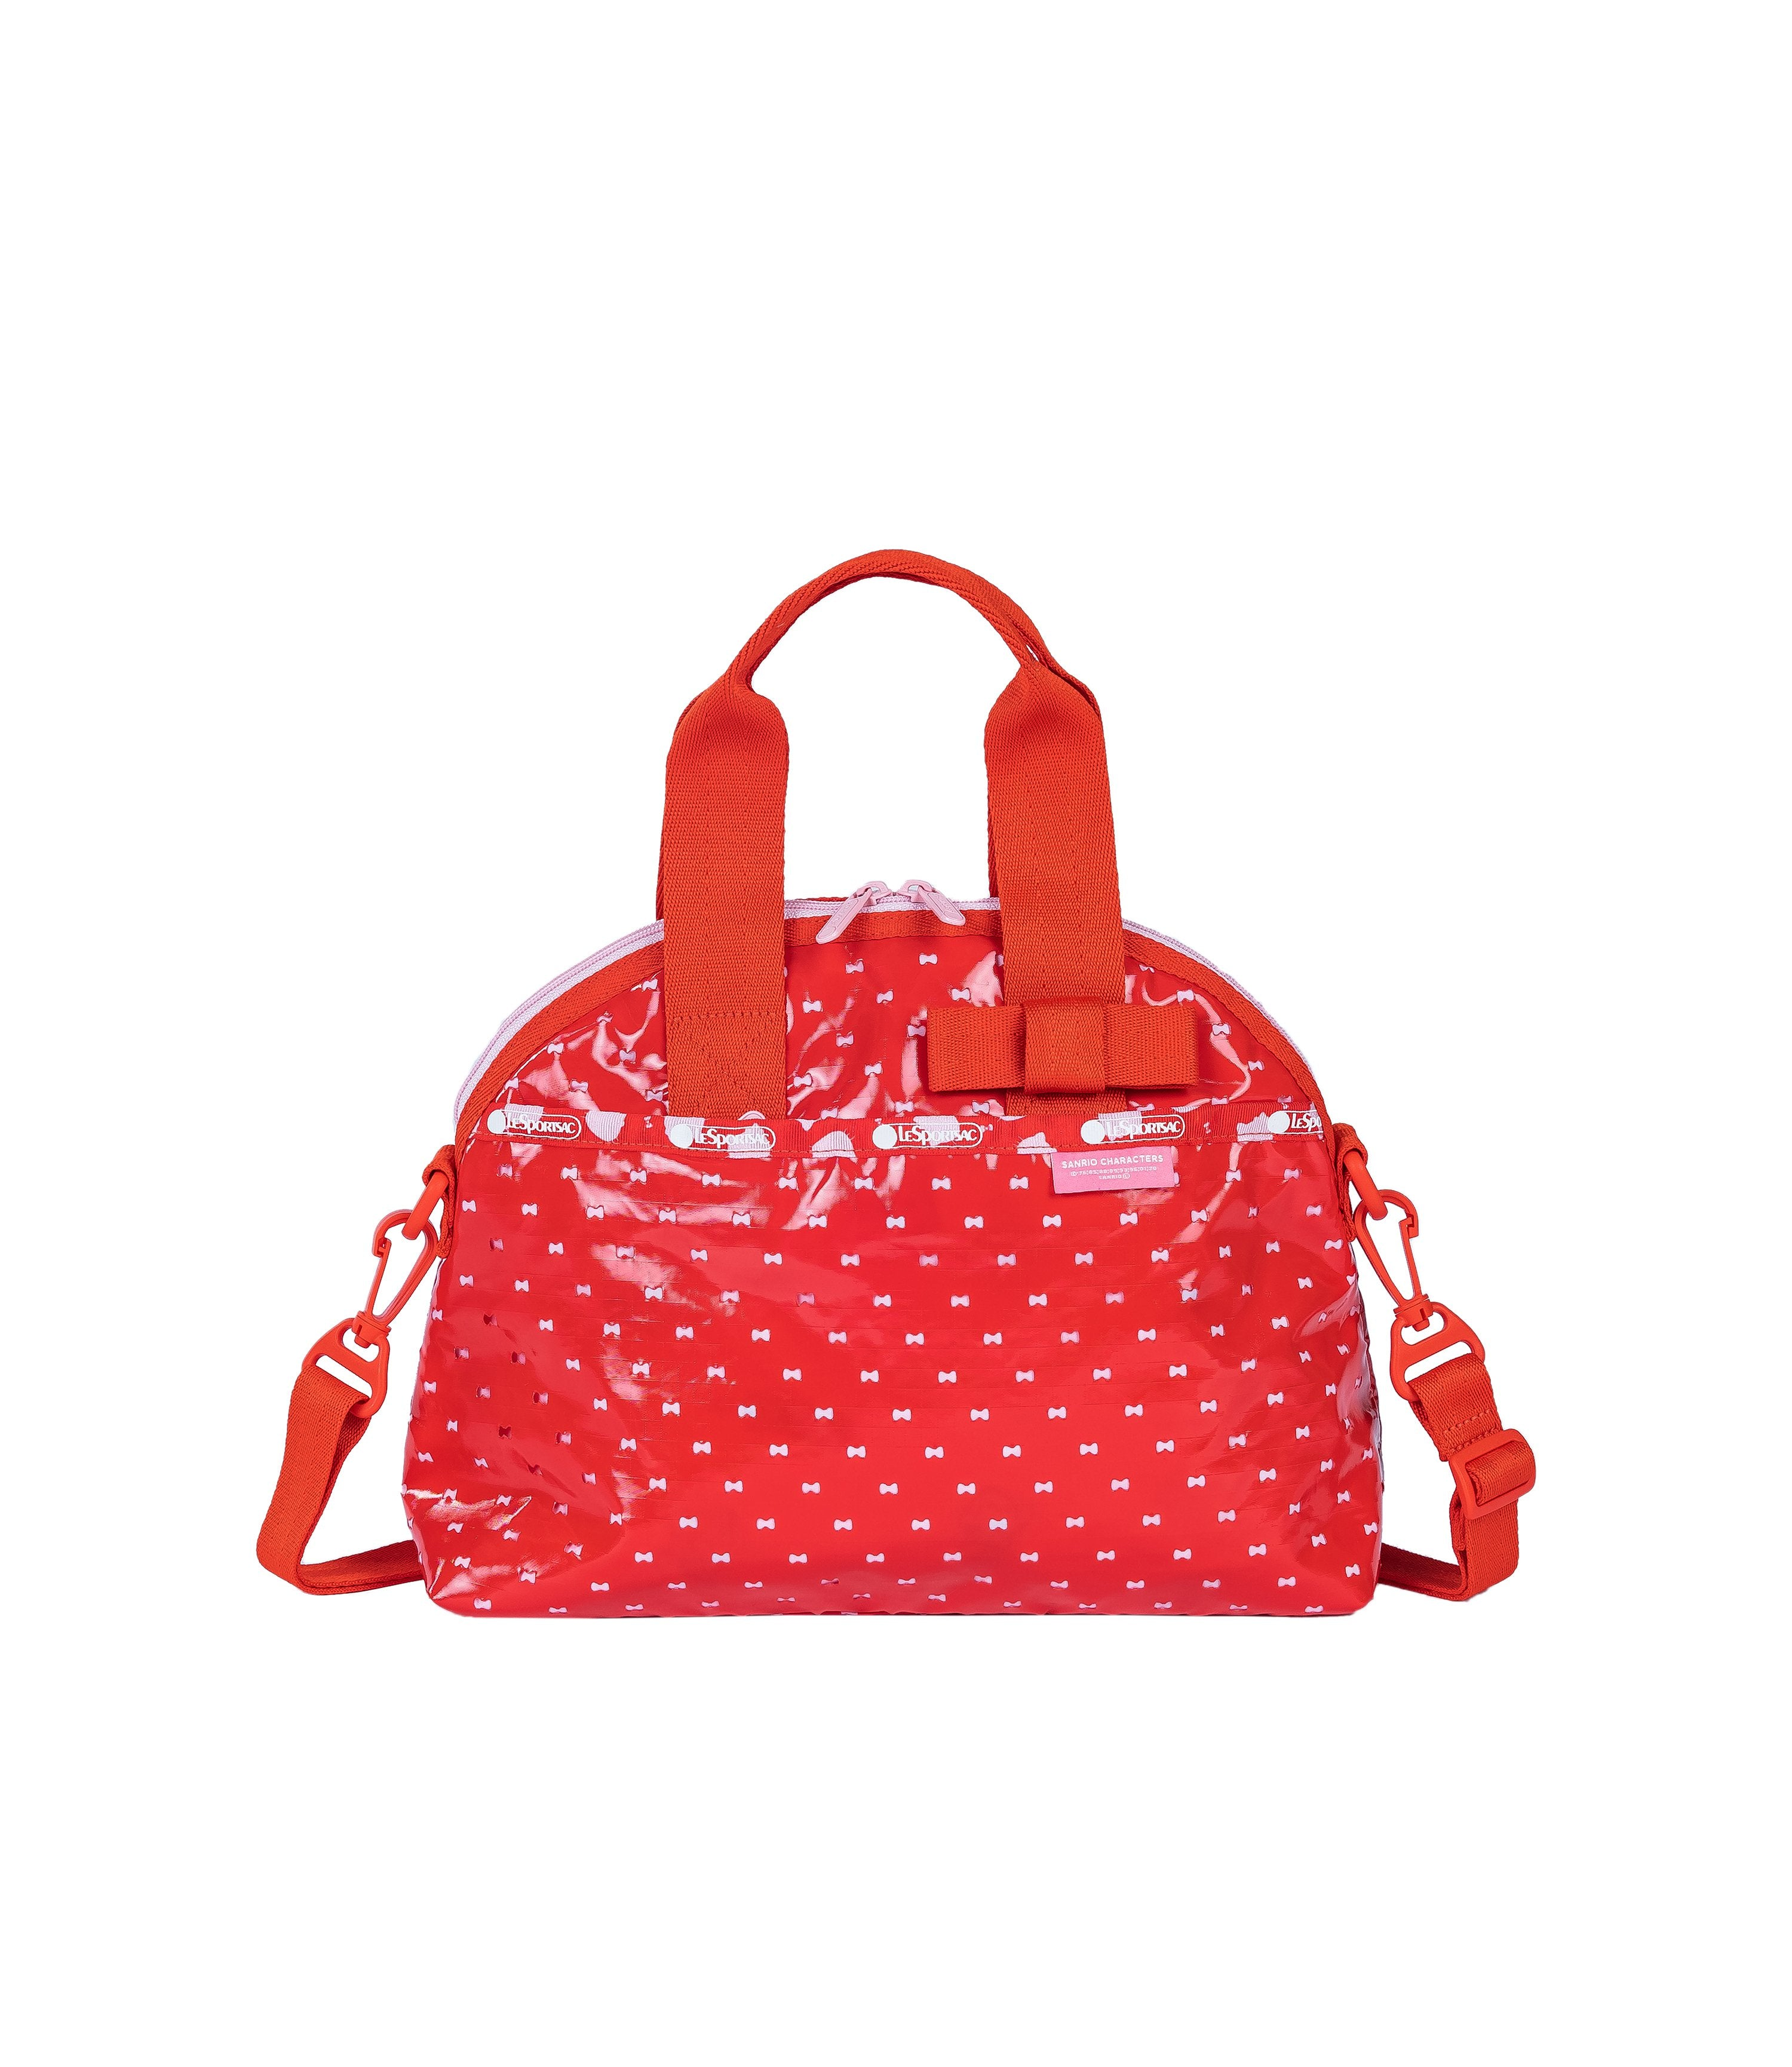 LeSportsac - Bow Dome Bag - Hello Kitty Perf - Handbags